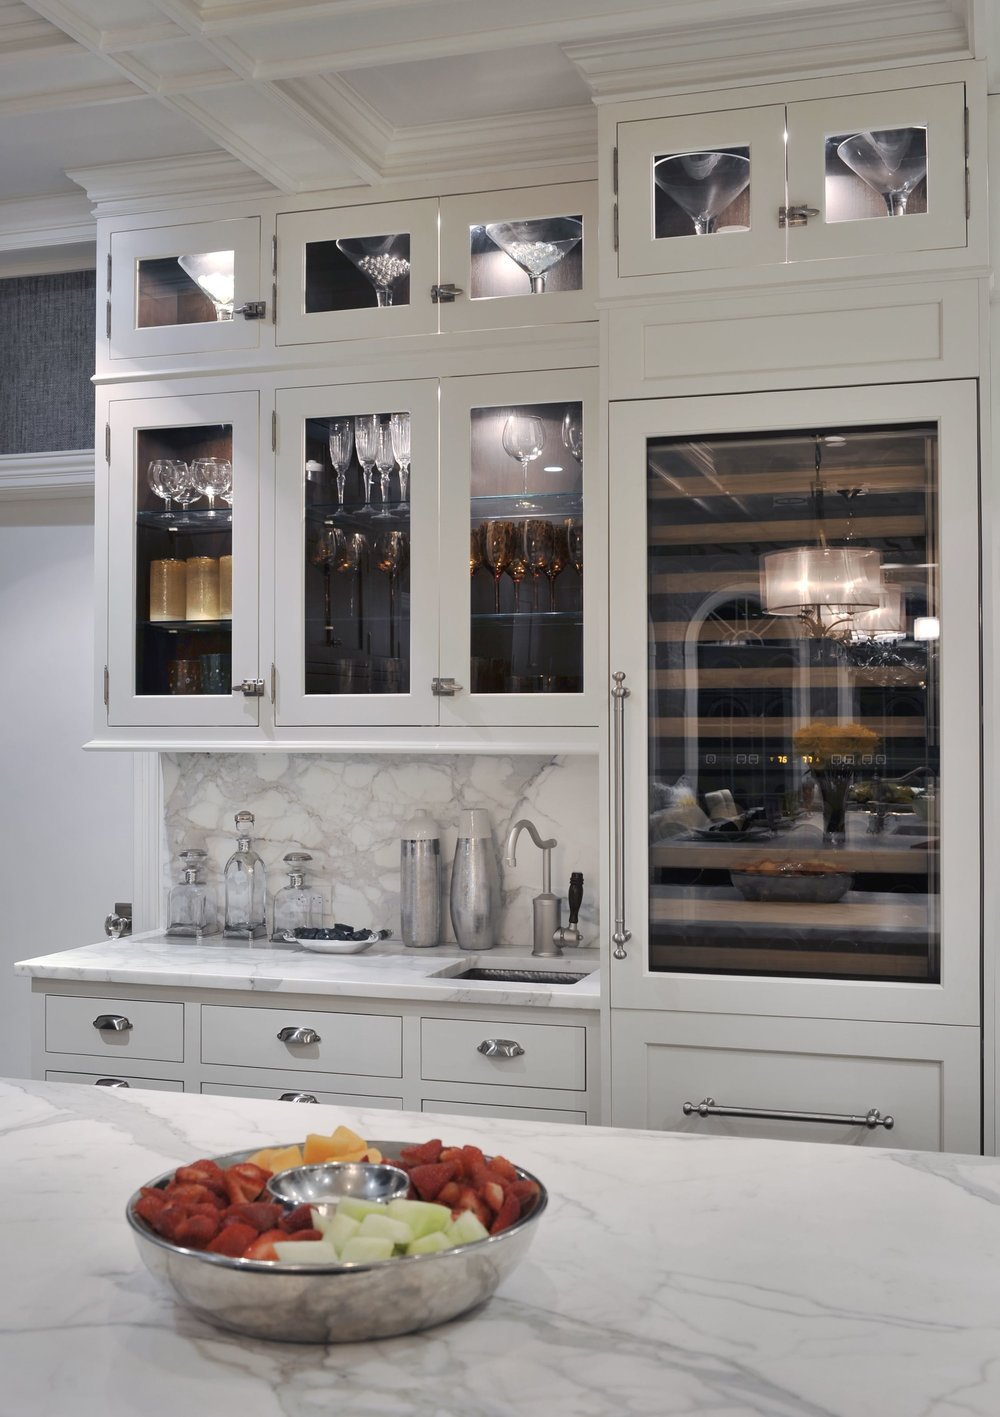 Transitional style kitchen with elegant wine glass cabinet